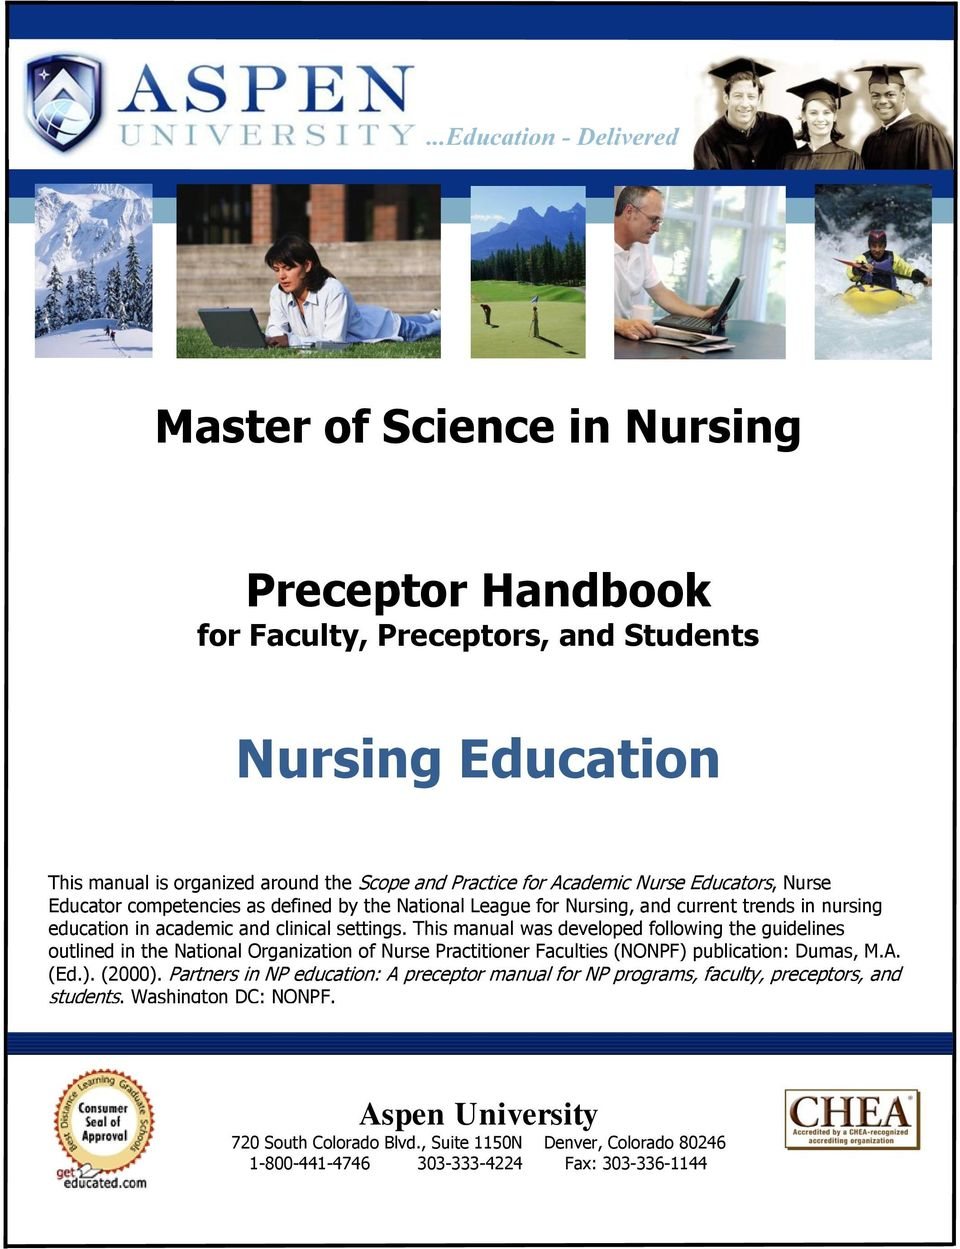 This manual was developed following the guidelines outlined in the National Organization of Nurse Practitioner Faculties (NONPF) publication: Dumas, M.A. (Ed.). (2000).